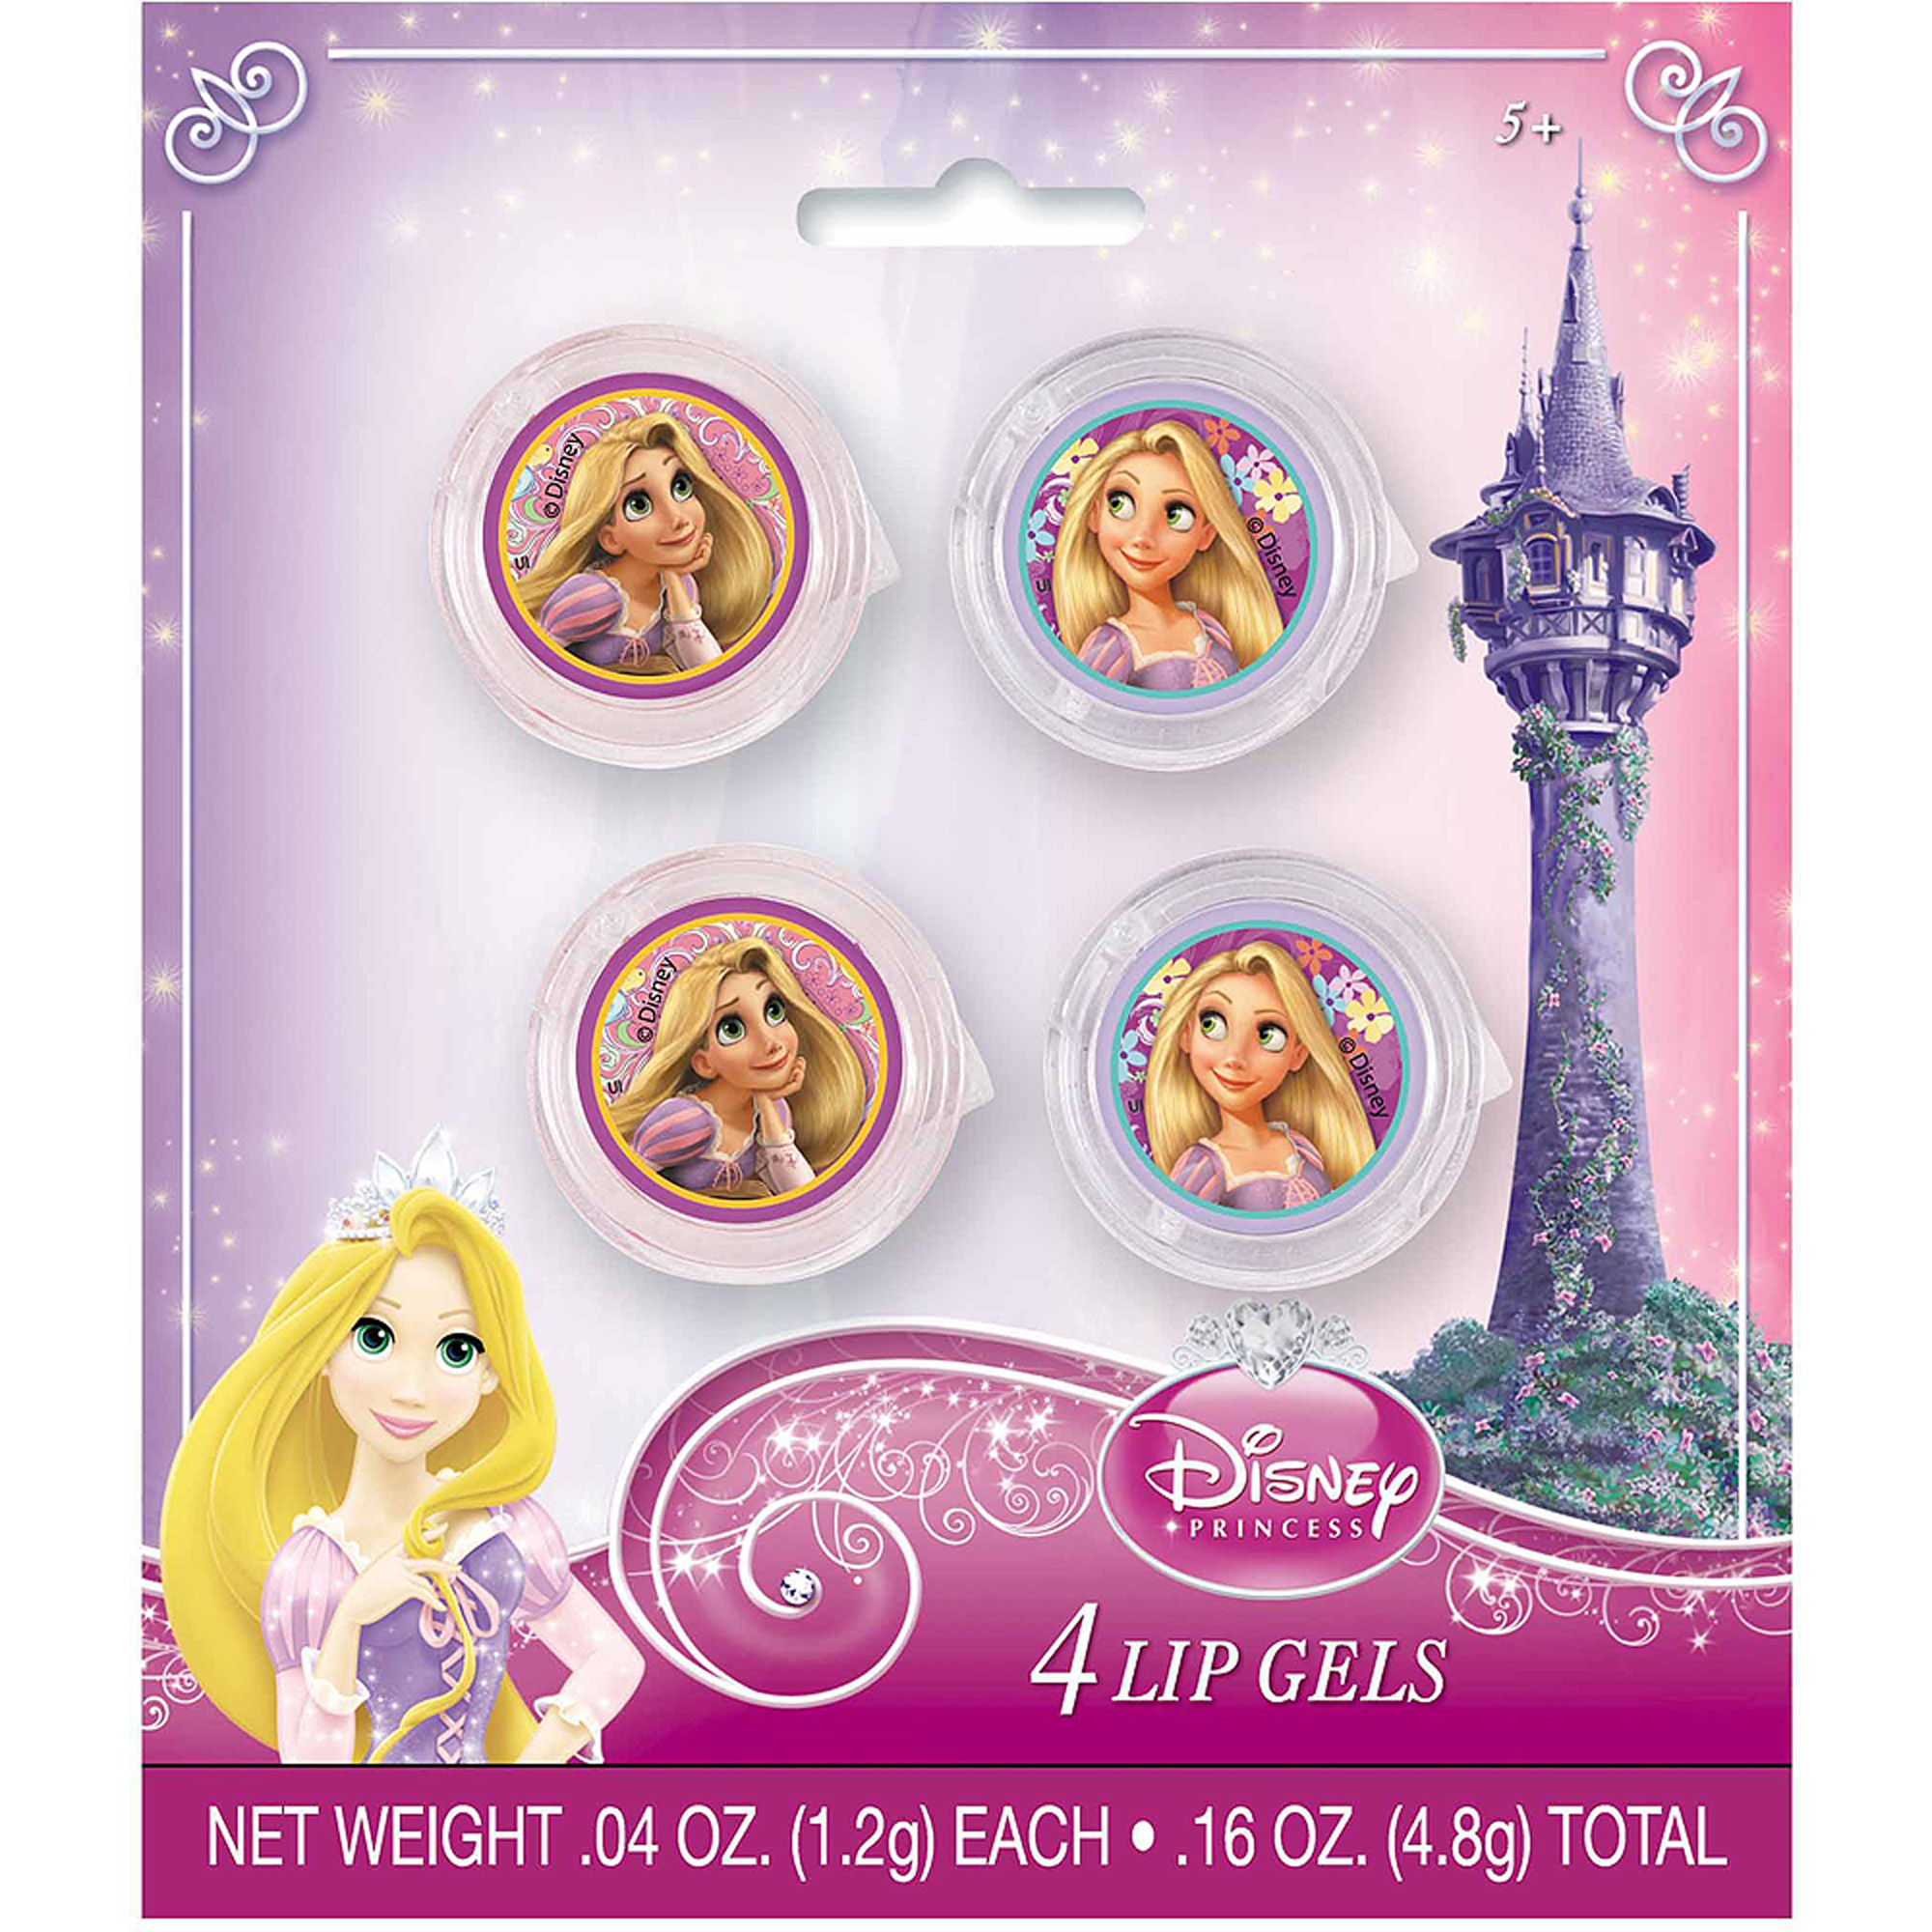 Disney Tangled Glitter Lip Gloss Party Favors, 4ct